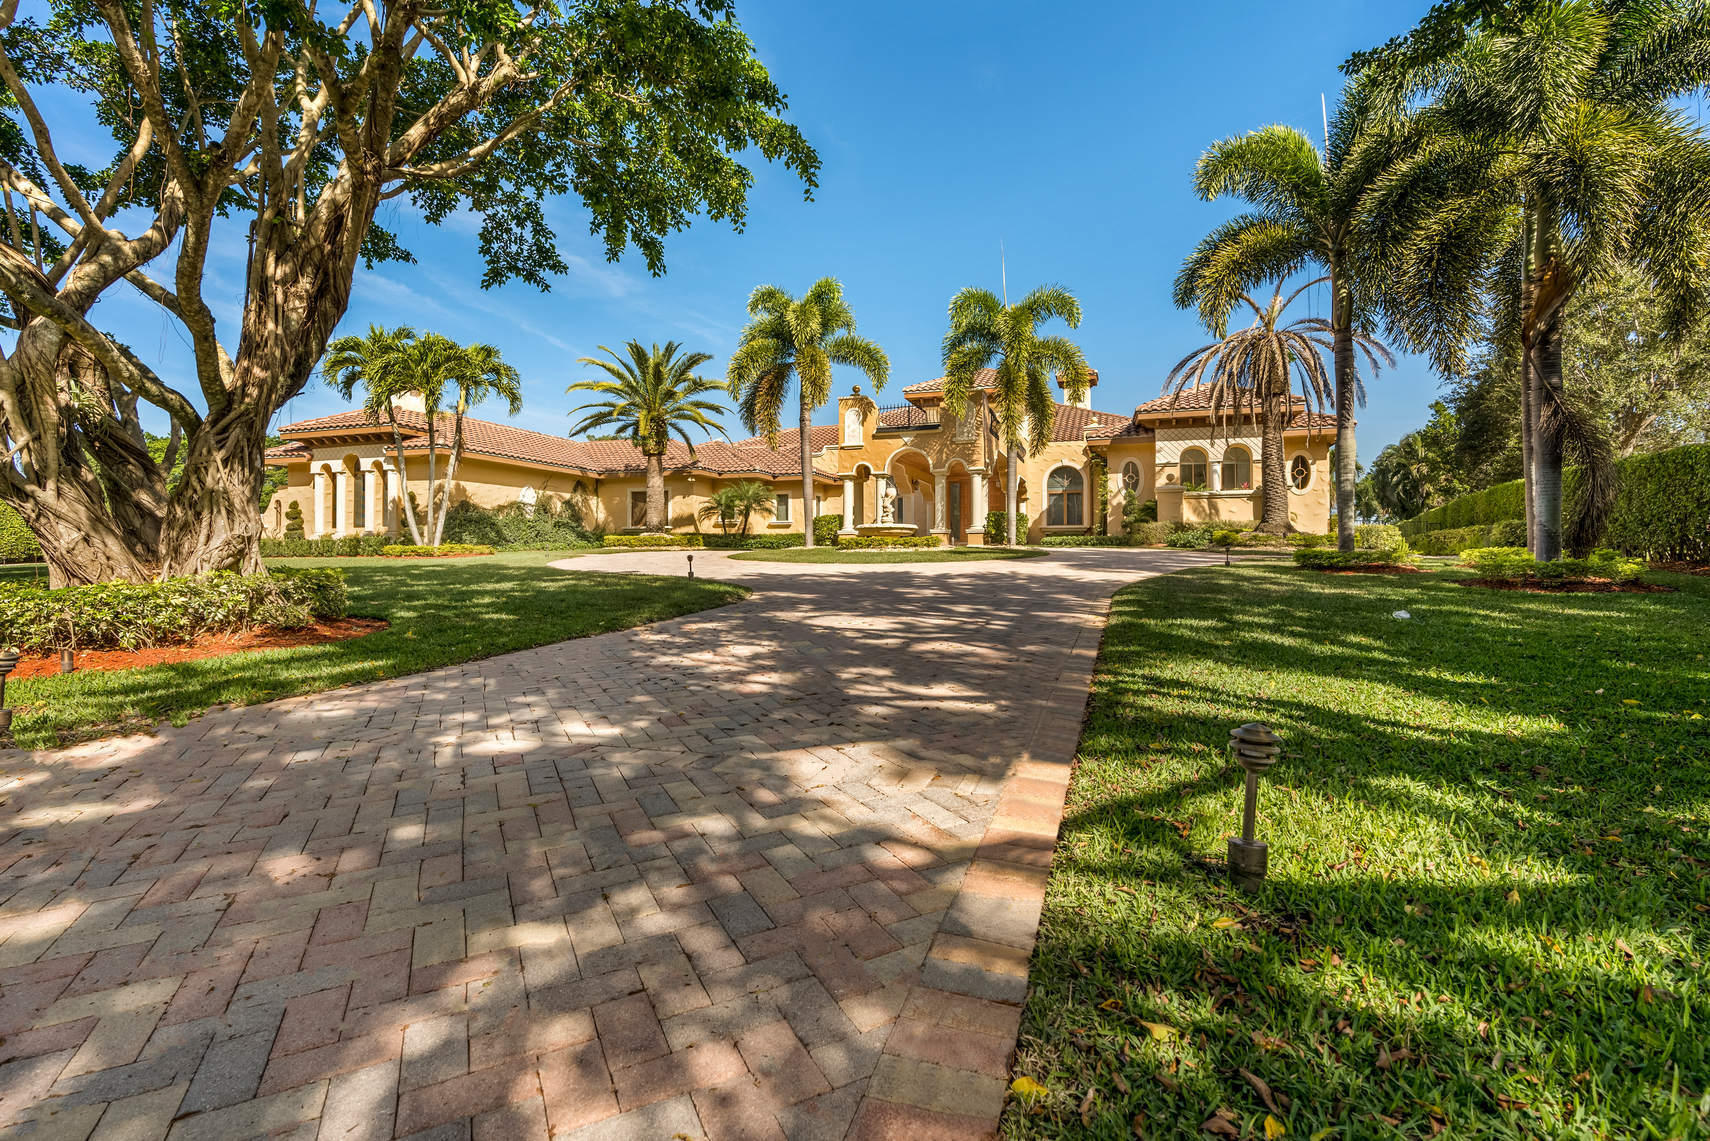 8681 Twin Lake Drive, Boca Raton, Florida 33496, 6 Bedrooms Bedrooms, ,7.1 BathroomsBathrooms,Single family detached,For sale,Twin Lake,RX-10645992